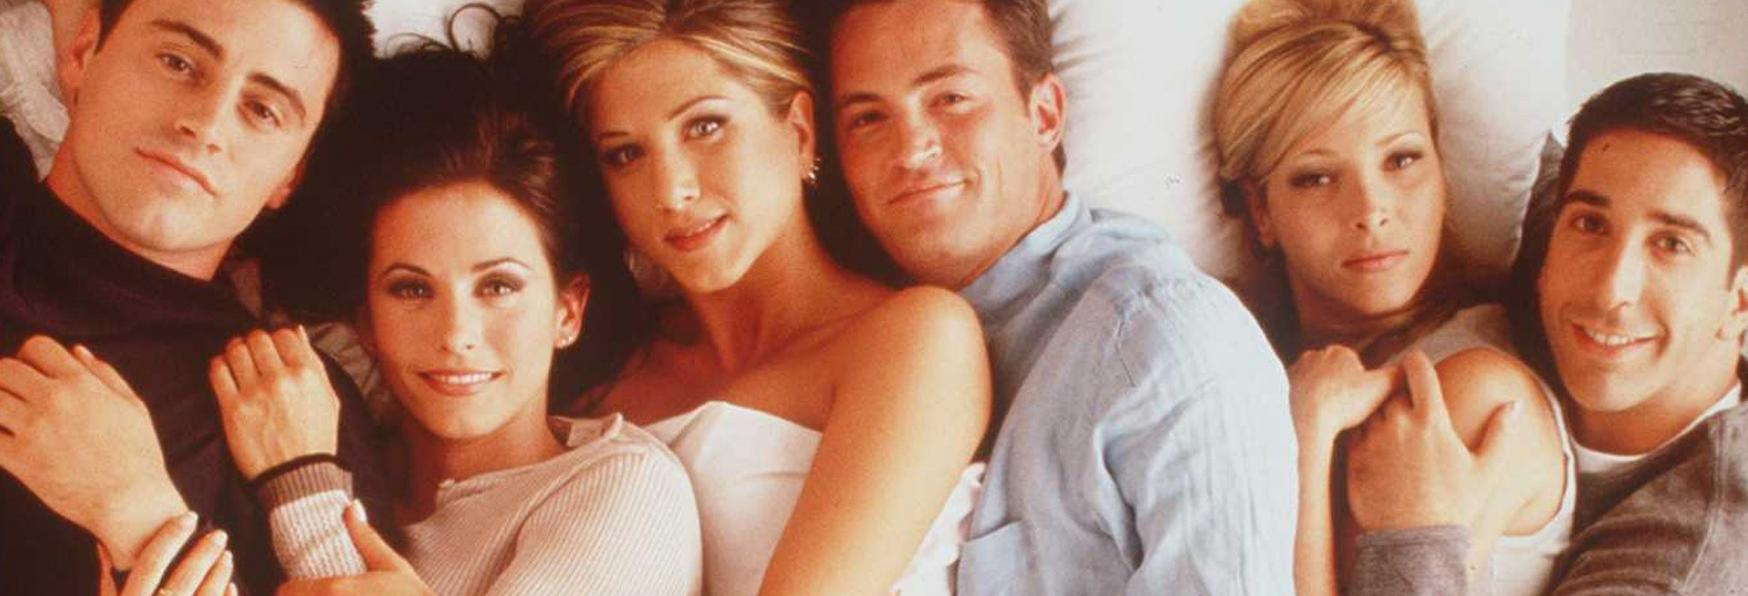 Friends: Confermata una Reunion su HBO Max con il Cast Originale